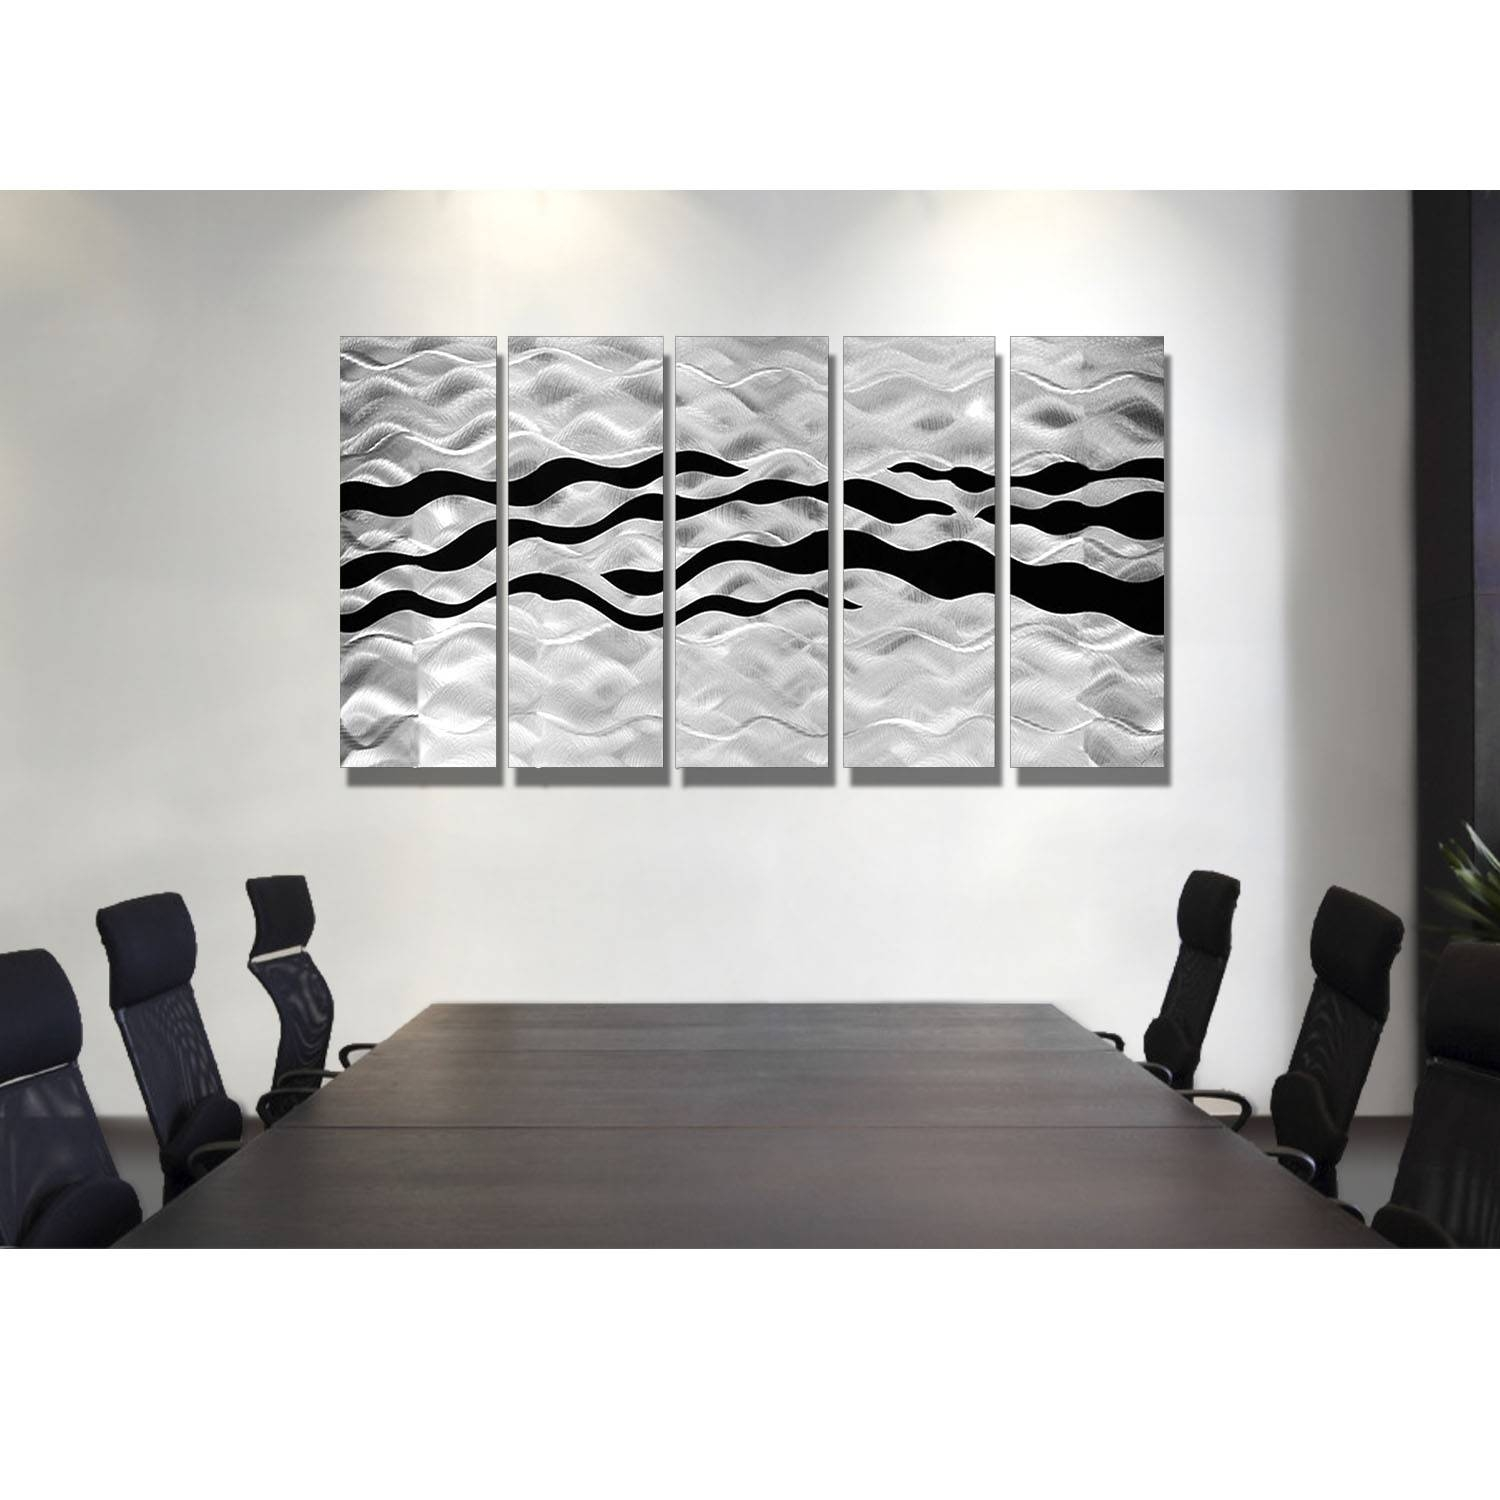 Onyx Oceana – Silver And Black Metal Wall Art – 5 Panel Wall Décor Regarding Latest Black And Silver Metal Wall Art (Gallery 17 of 20)